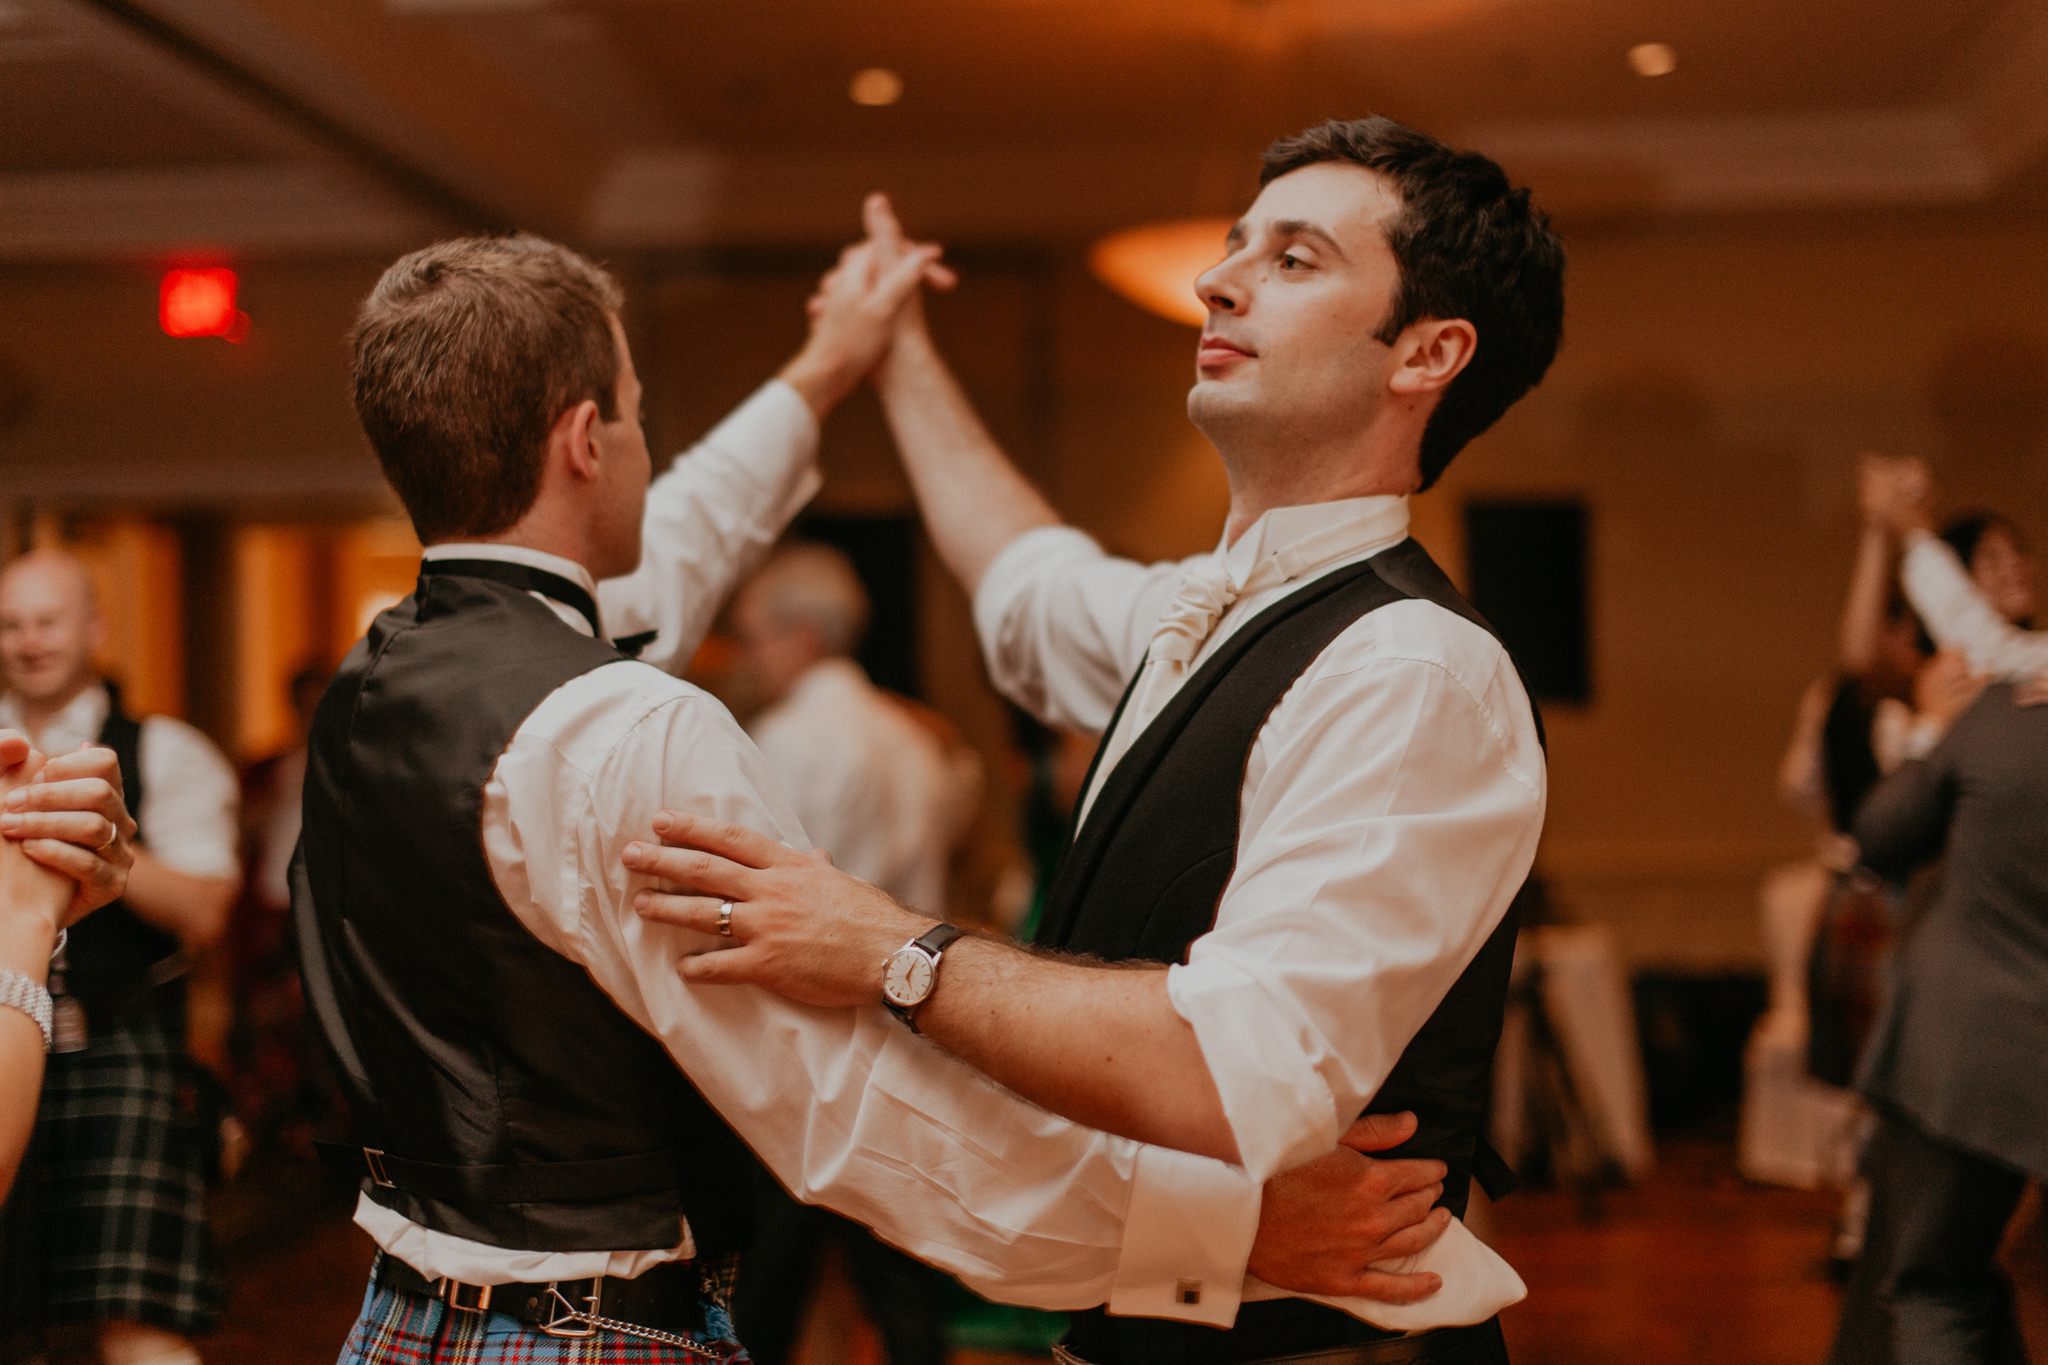 Groom and groomsmen dance in kilts at wedding reception candid documentary photography